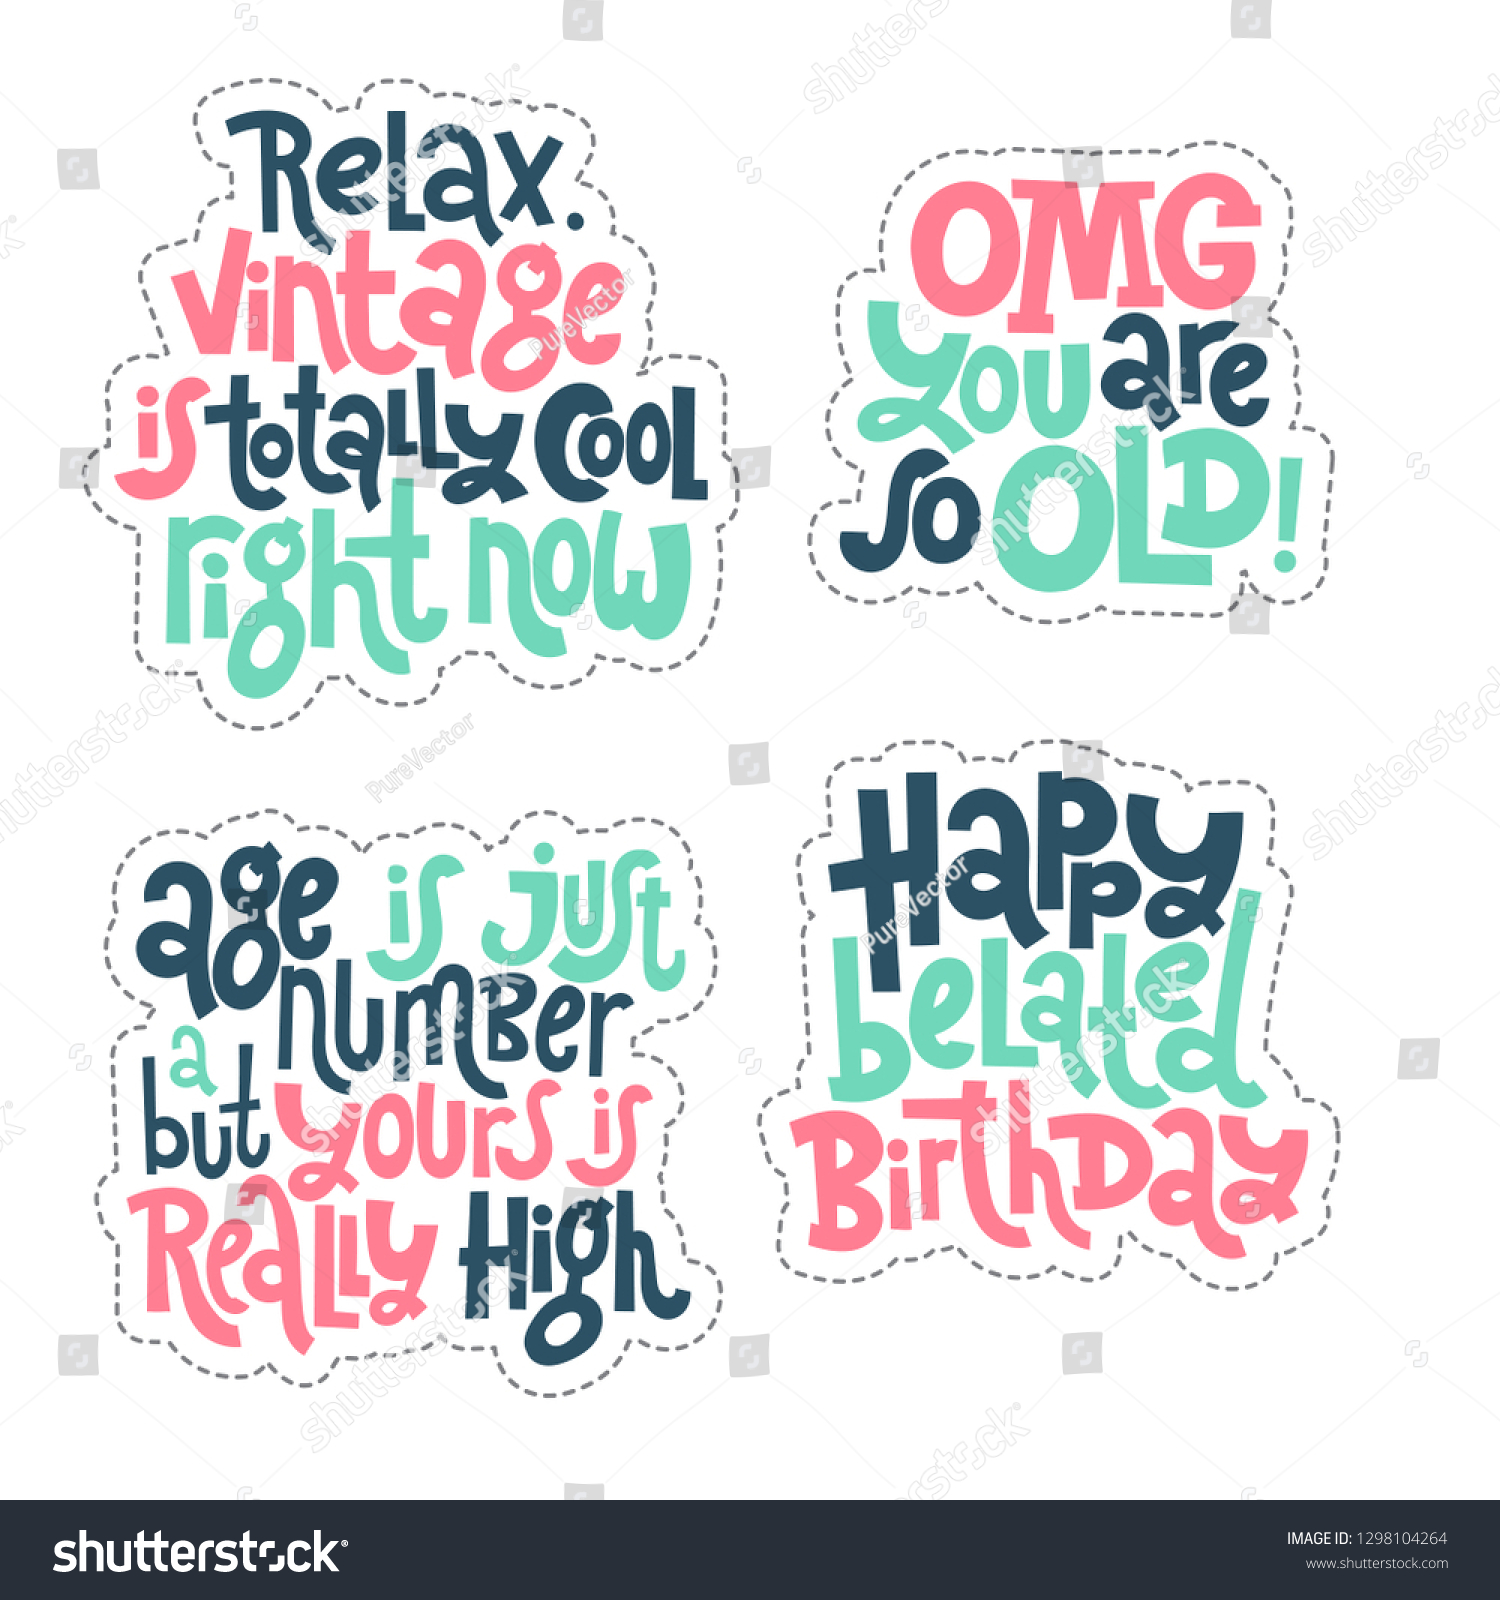 c1ae0c2f4 Sticker set design template with hand drawn vector lettering. Comic phrases  about birthday in the